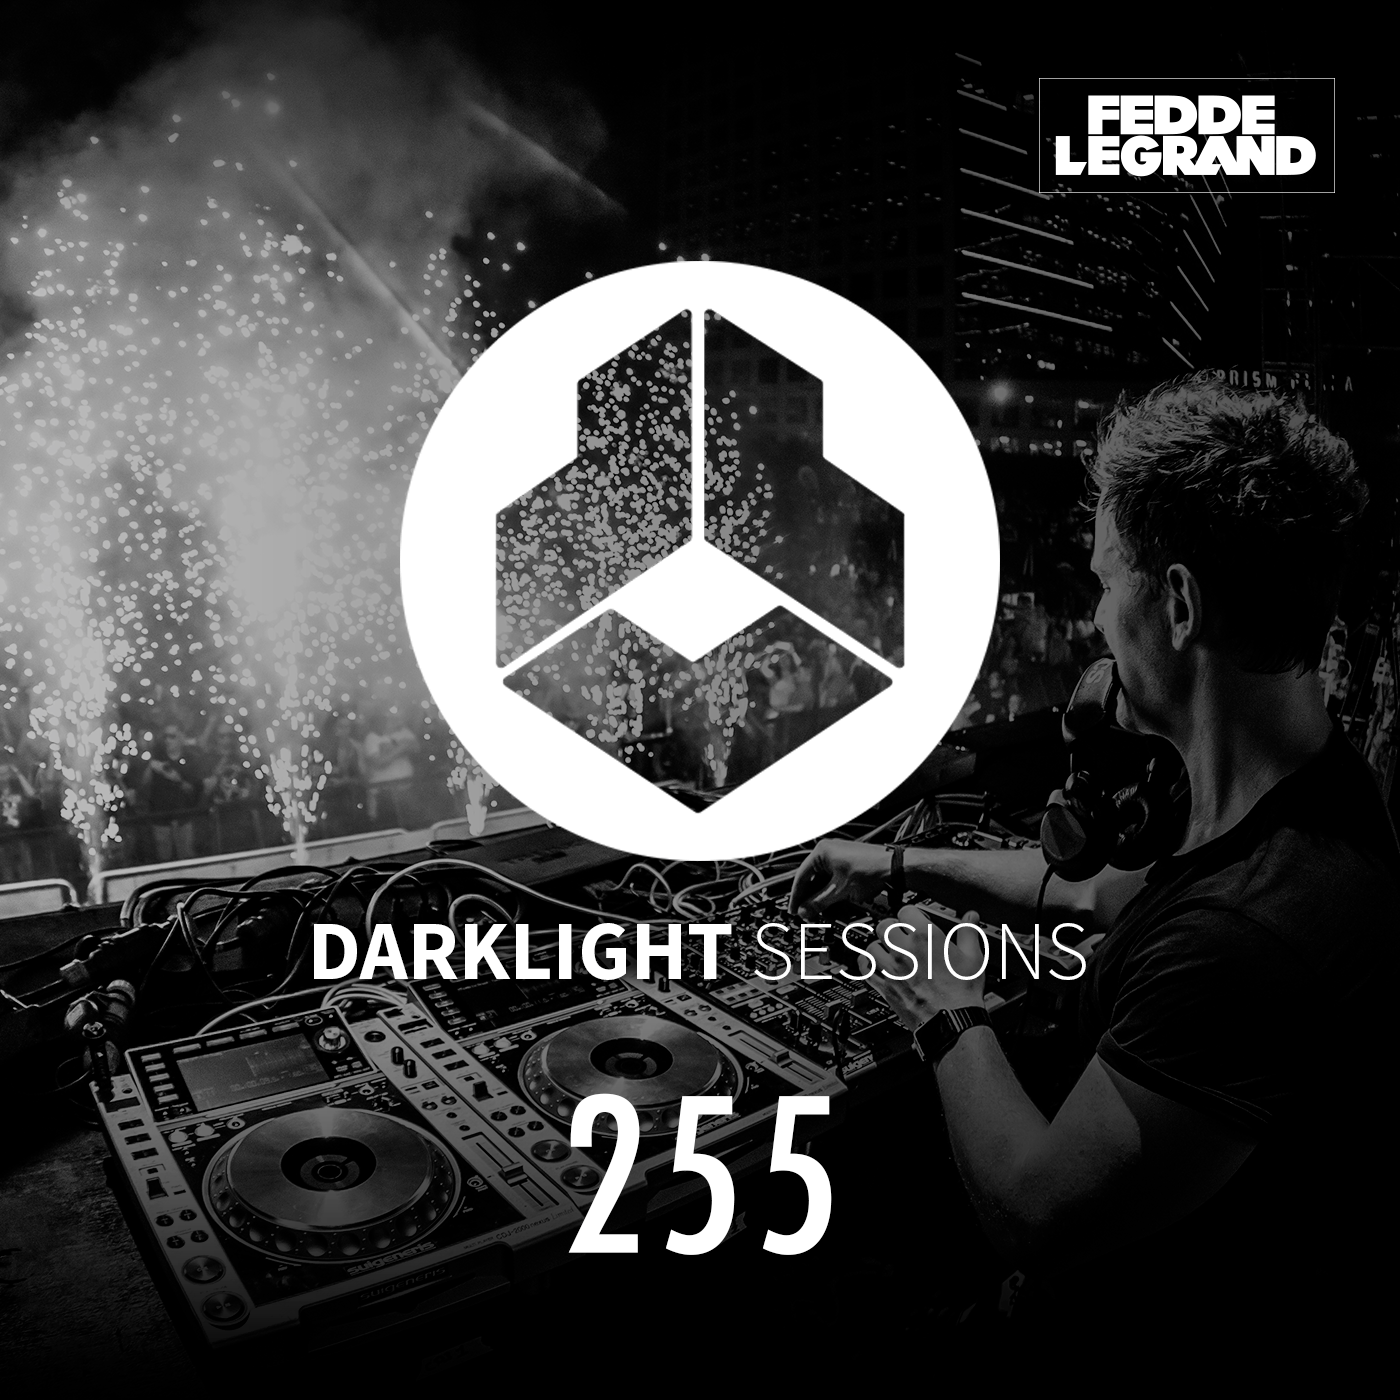 Darklight Sessions 255